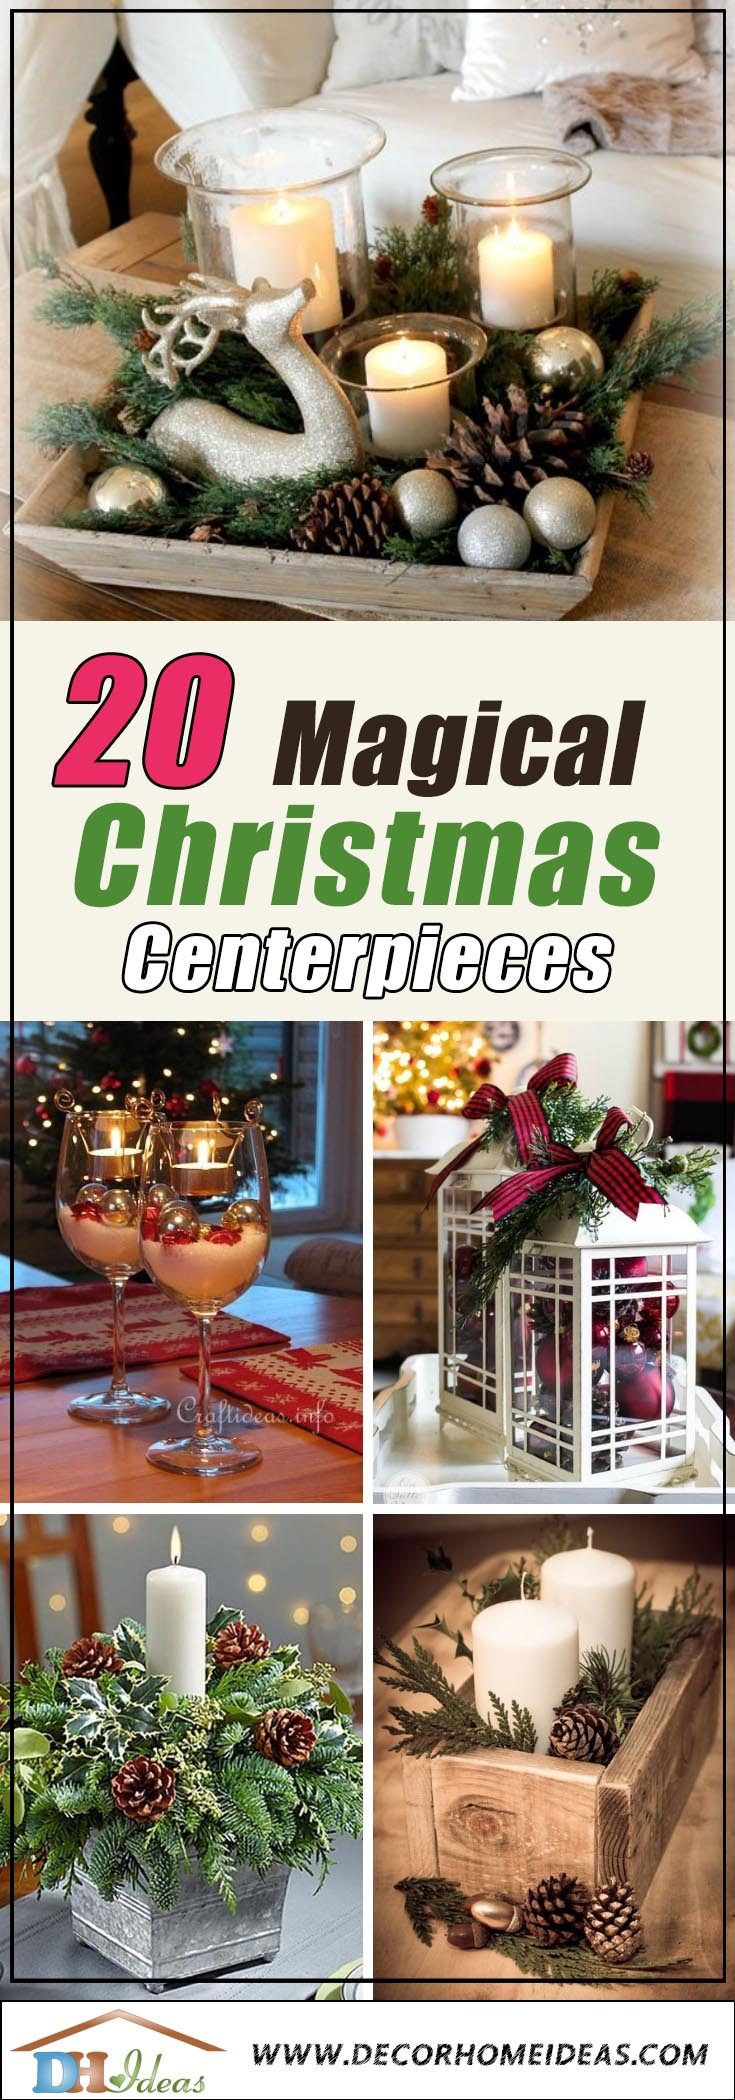 Christmas Centerpieces #Christmas #centerpieces #Christmasdecor #decorhomeideas